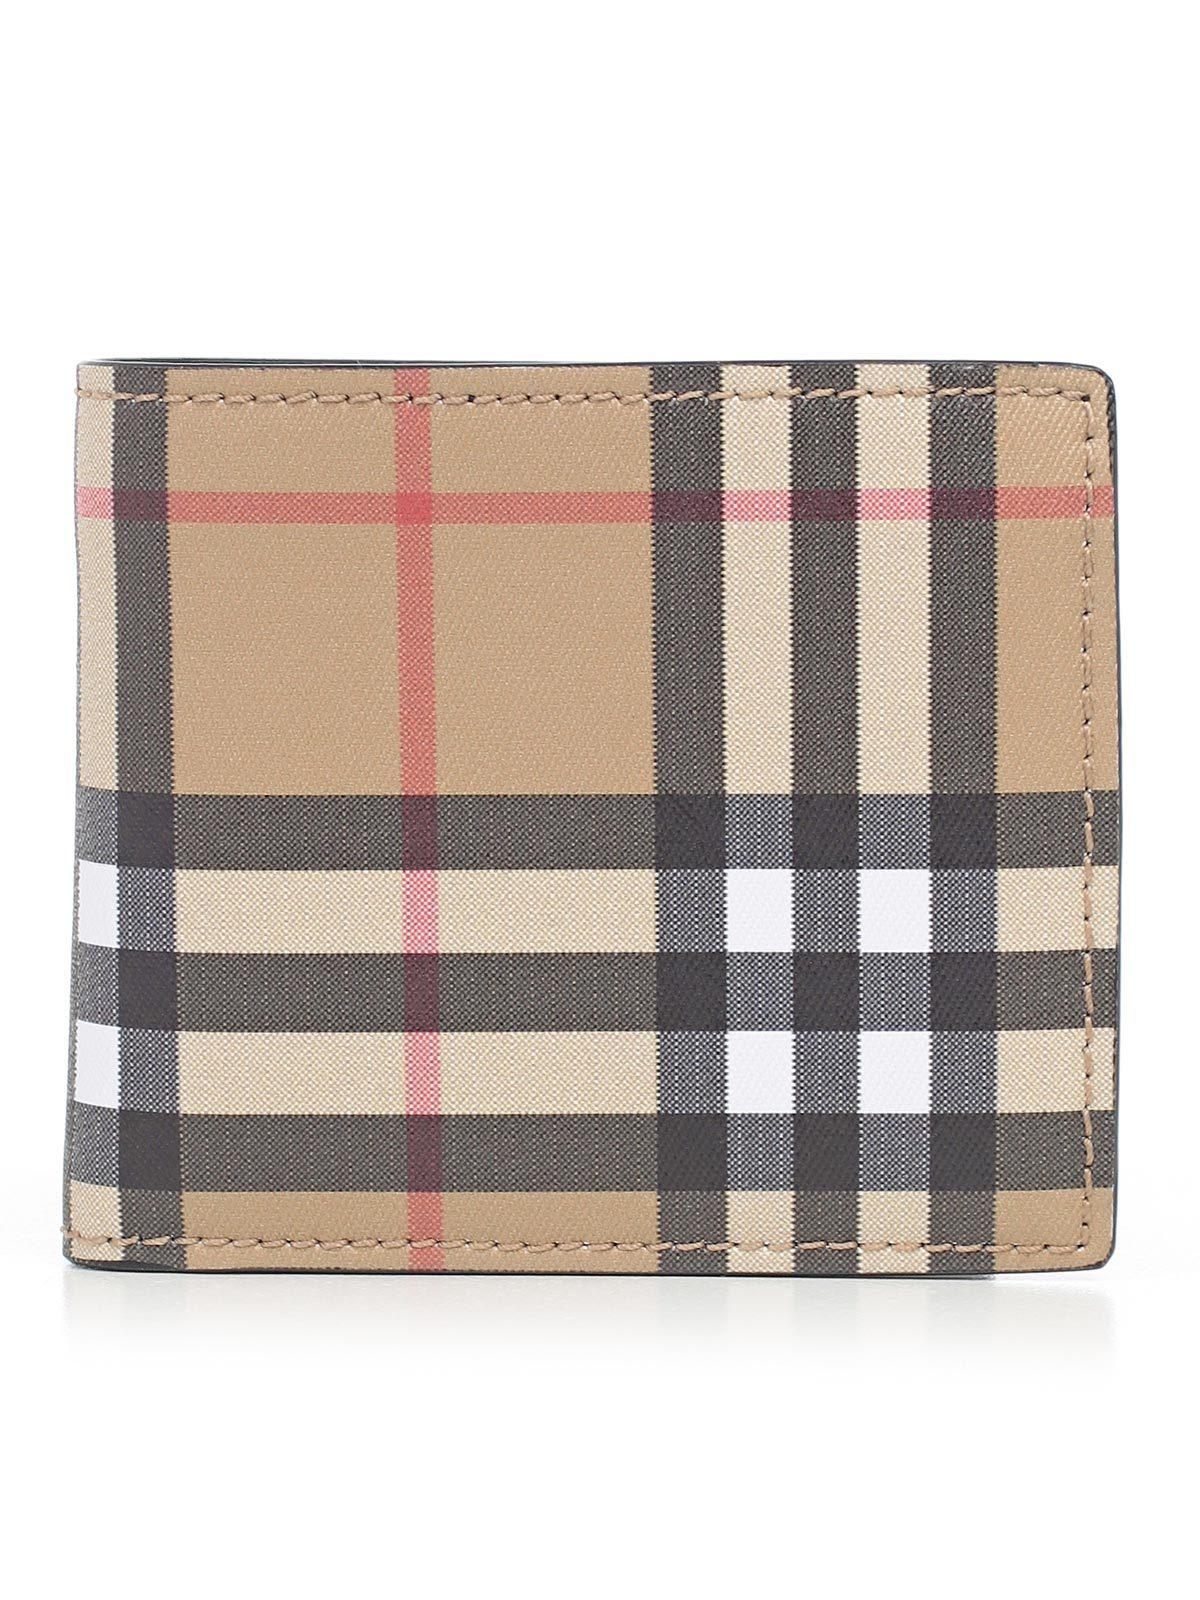 5e651f5393f Burberry Vintage Check Bifold Wallet in Black for Men - Lyst